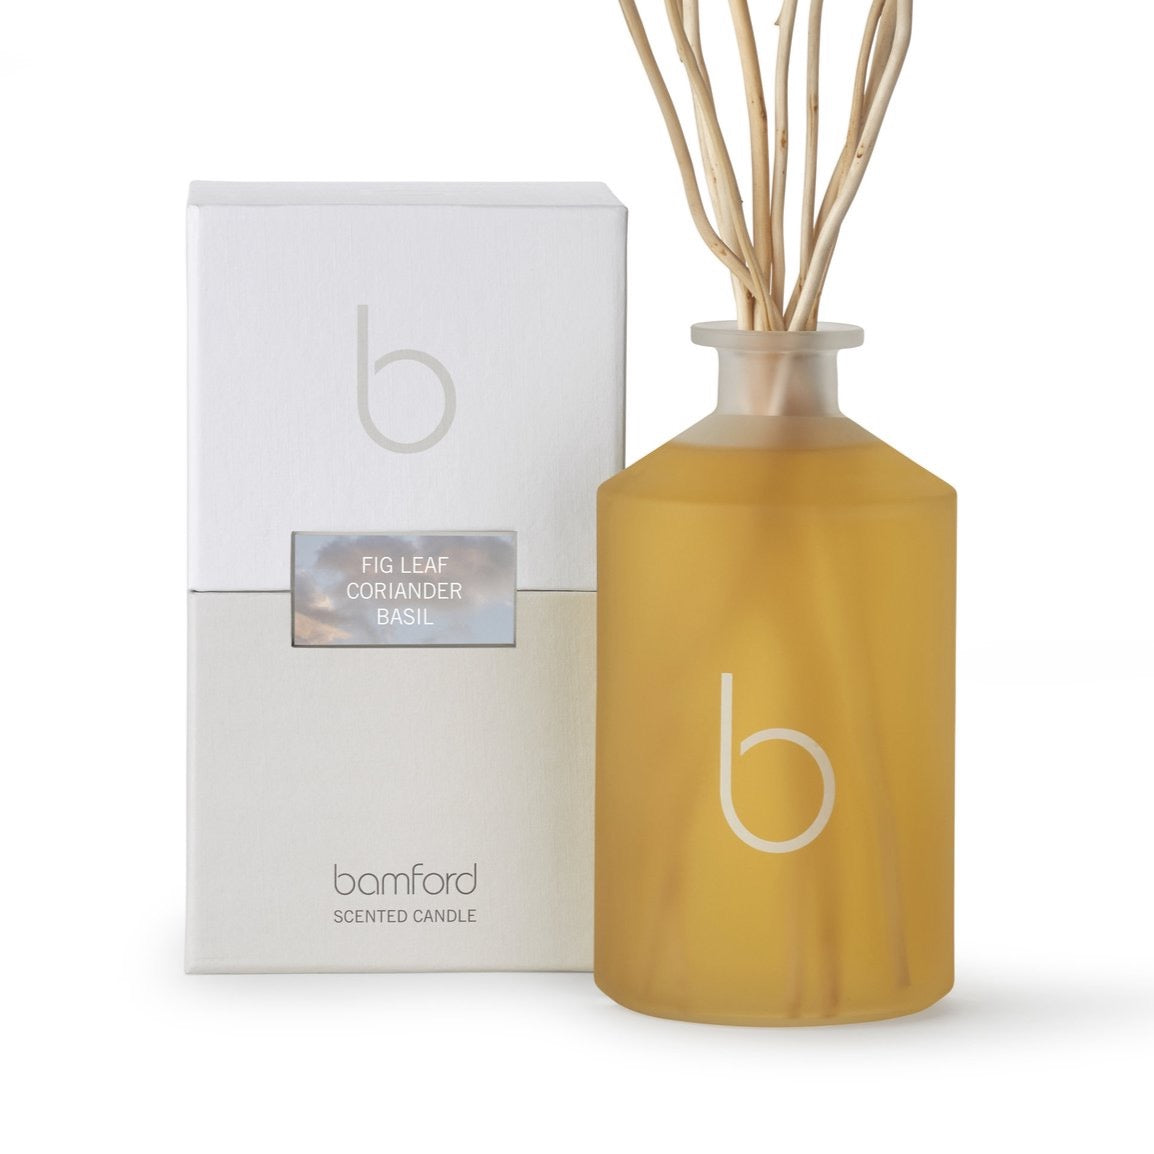 A white frosted glass bottle with sticks sticking out of the bottle. On the box it says Bamford scented candle willow diffuser refill 500ml.